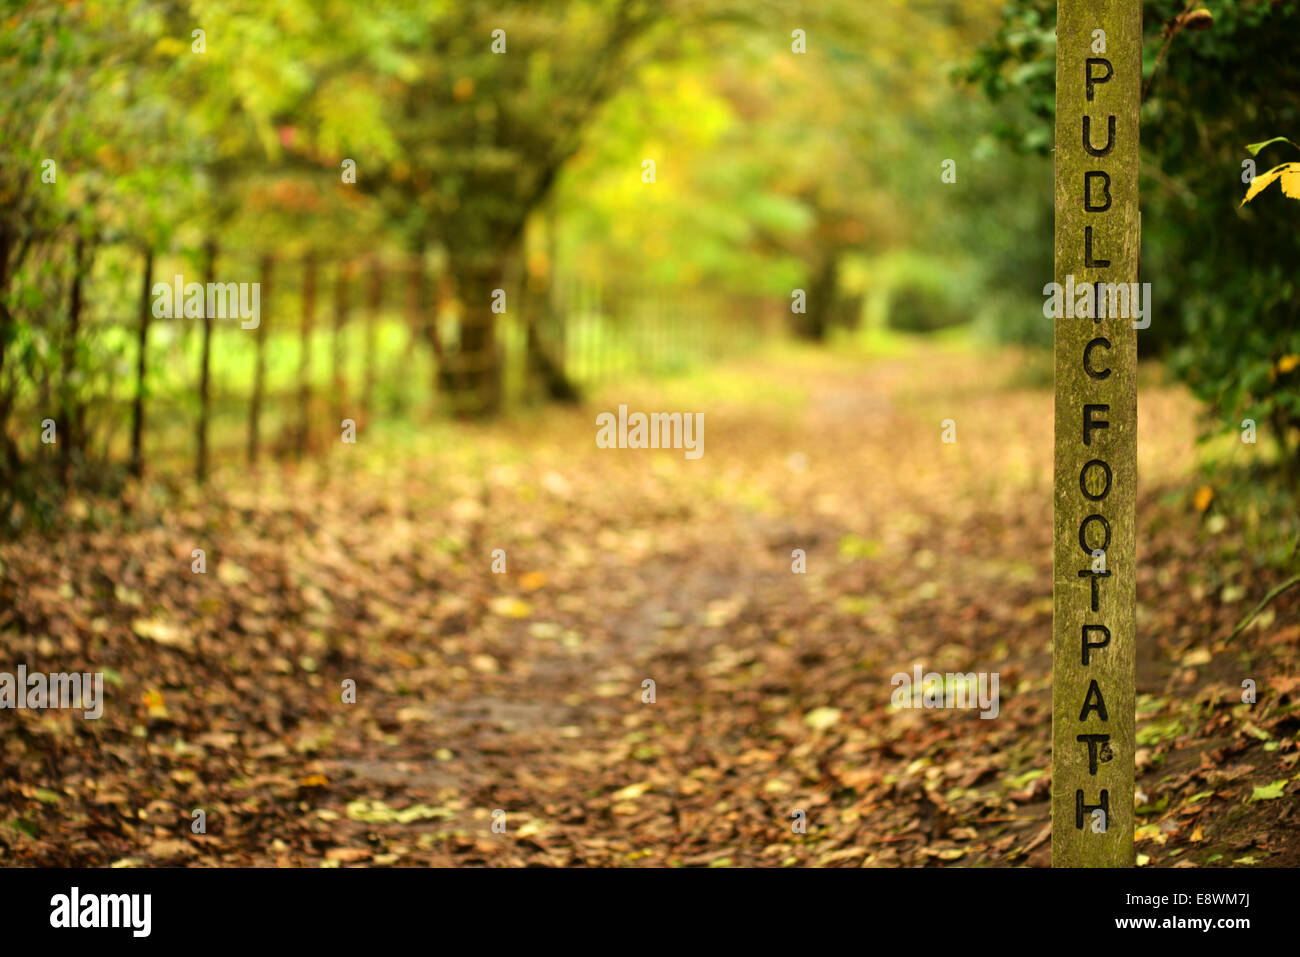 Public footpath signpost in Autumn - Stock Image